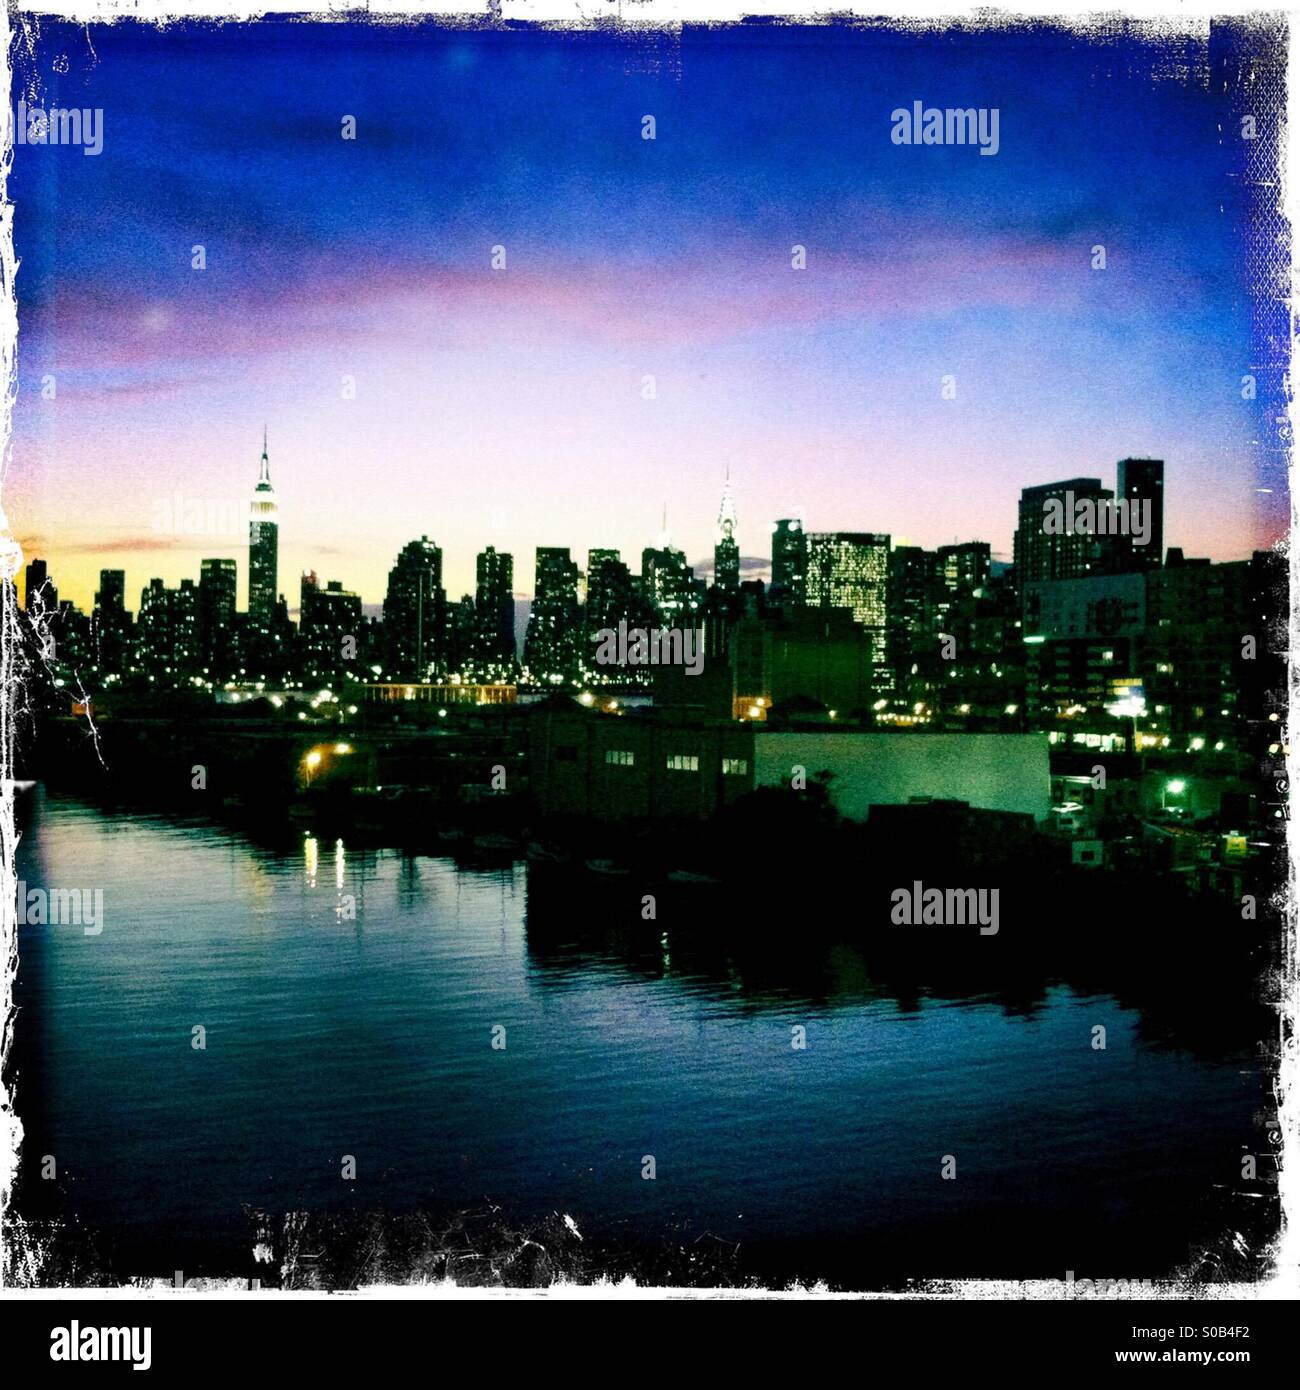 The New York skyline photographed from Greenpoint, Brooklyn, with Bushwick Inlet in foreground. - Stock Image